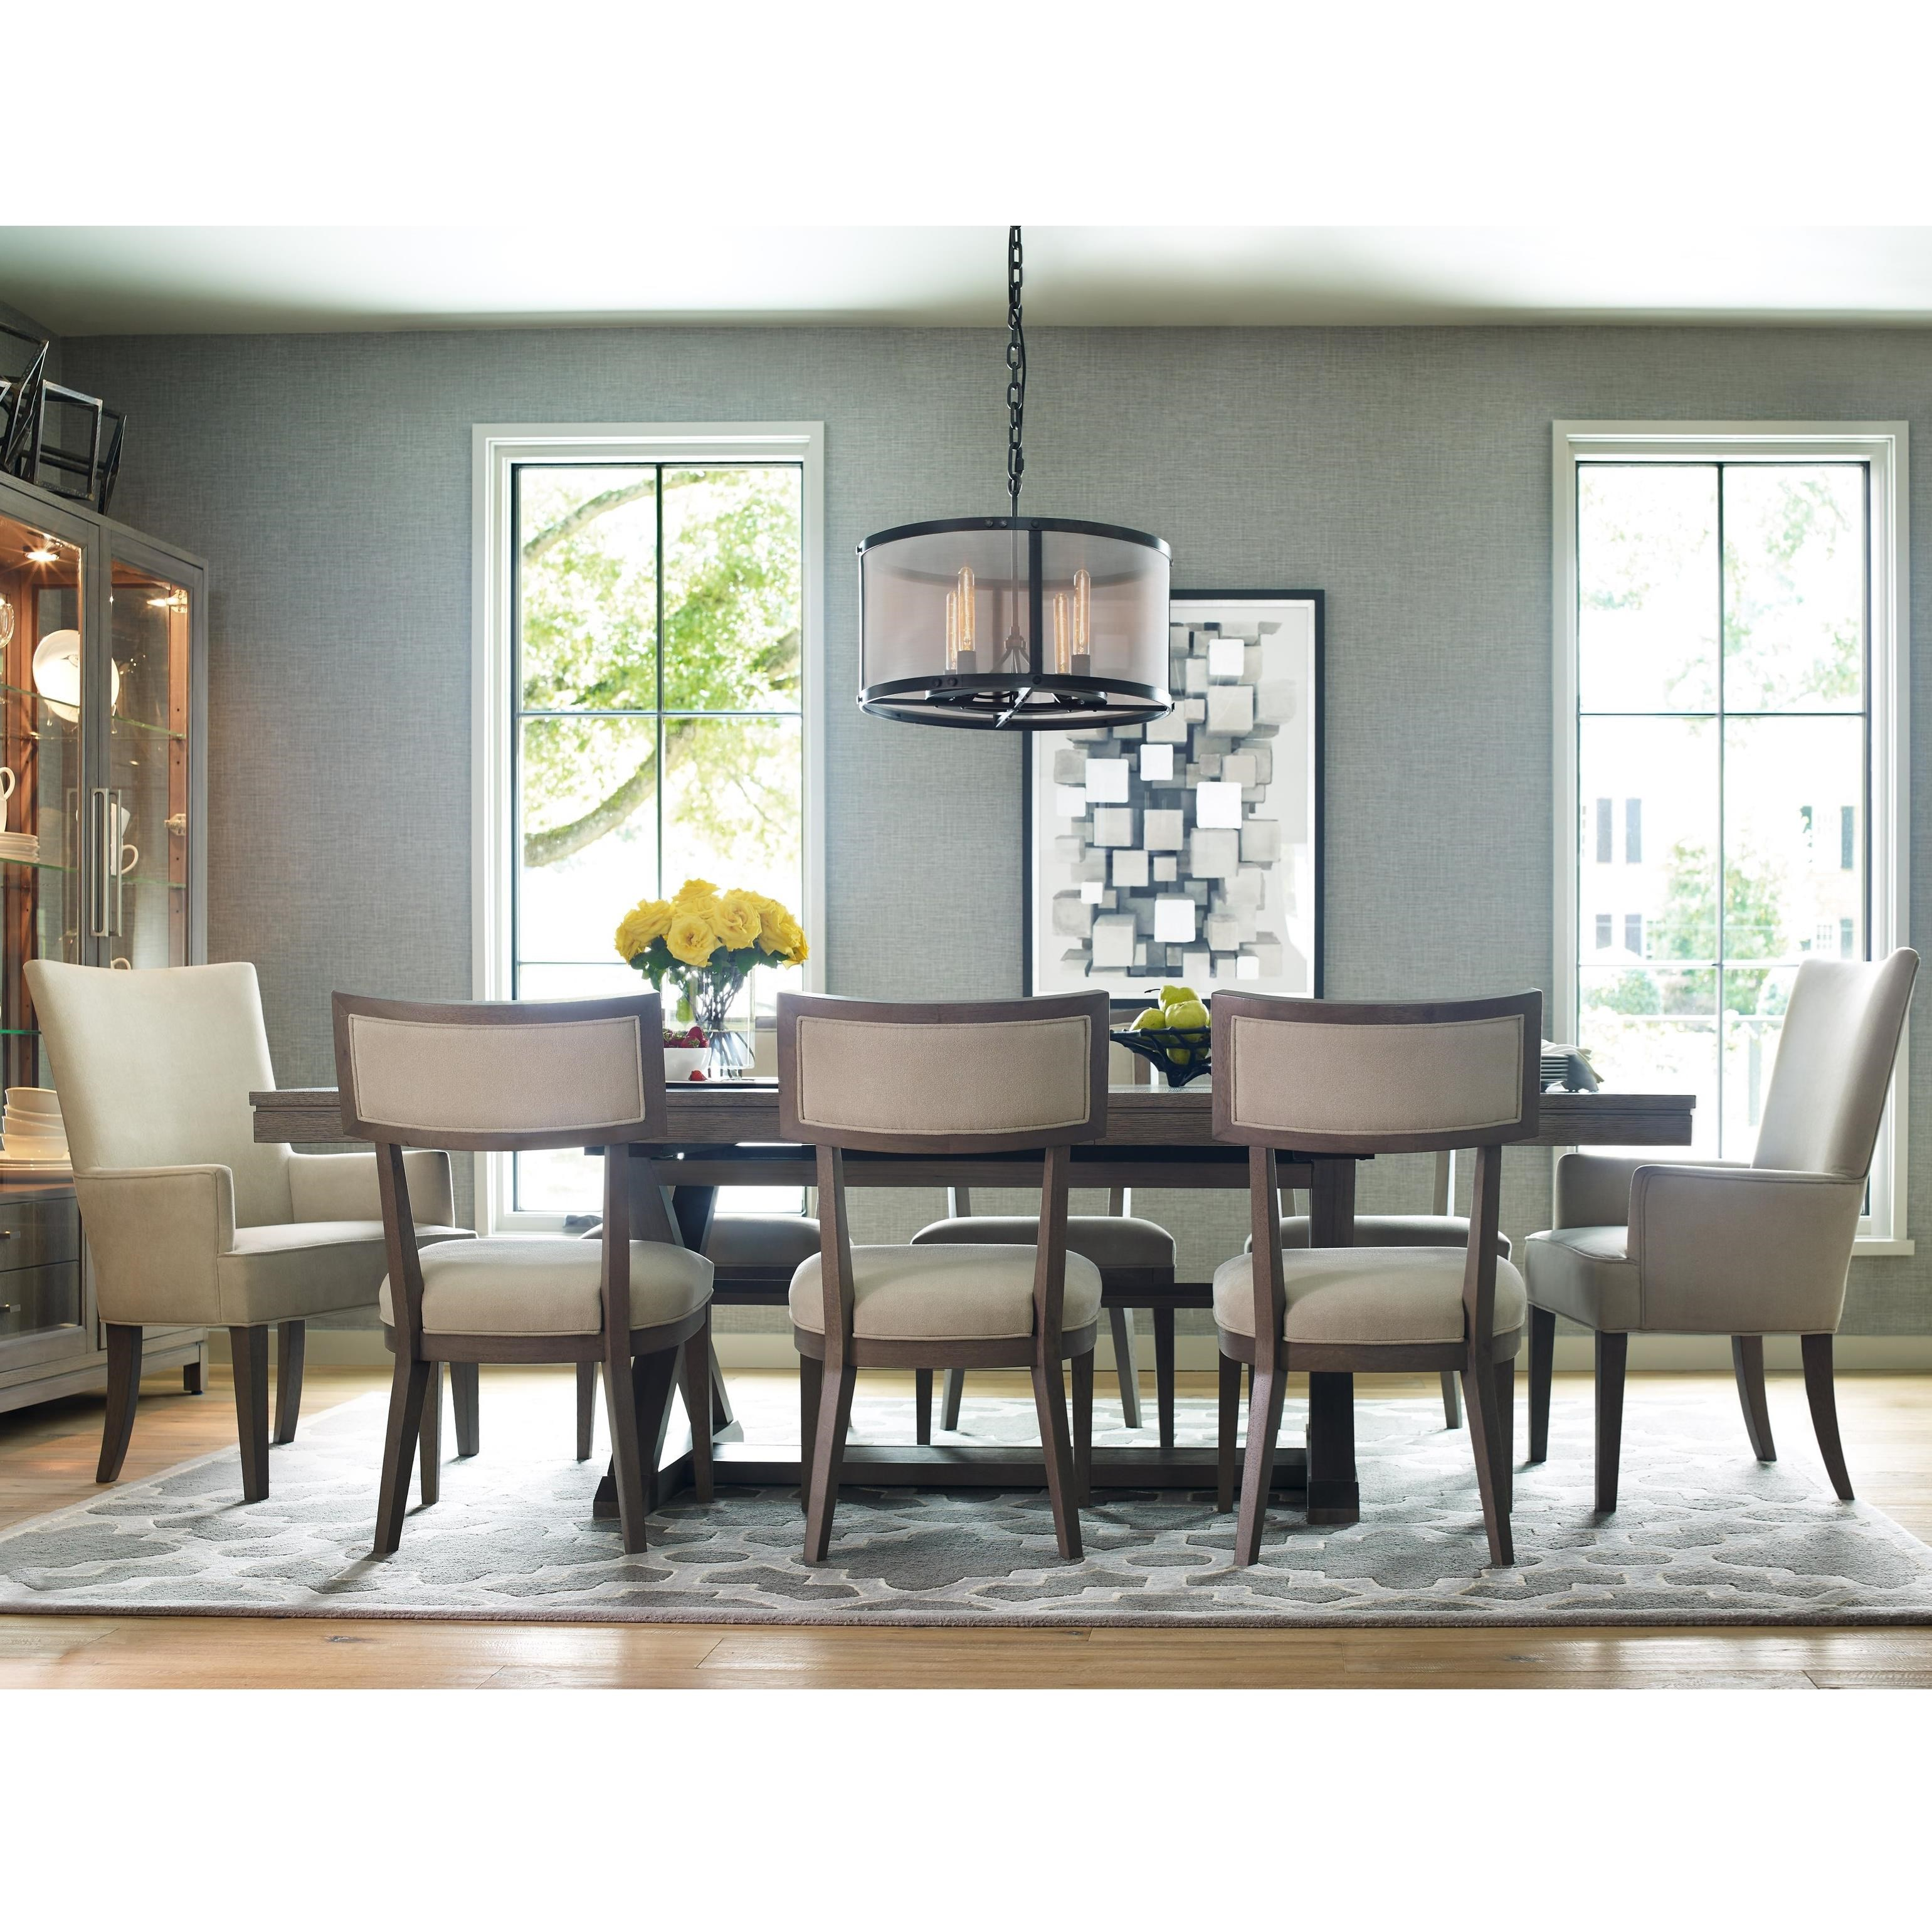 Rachael ray home by legacy classic high line 9 piece for Legacy classic dining room furniture